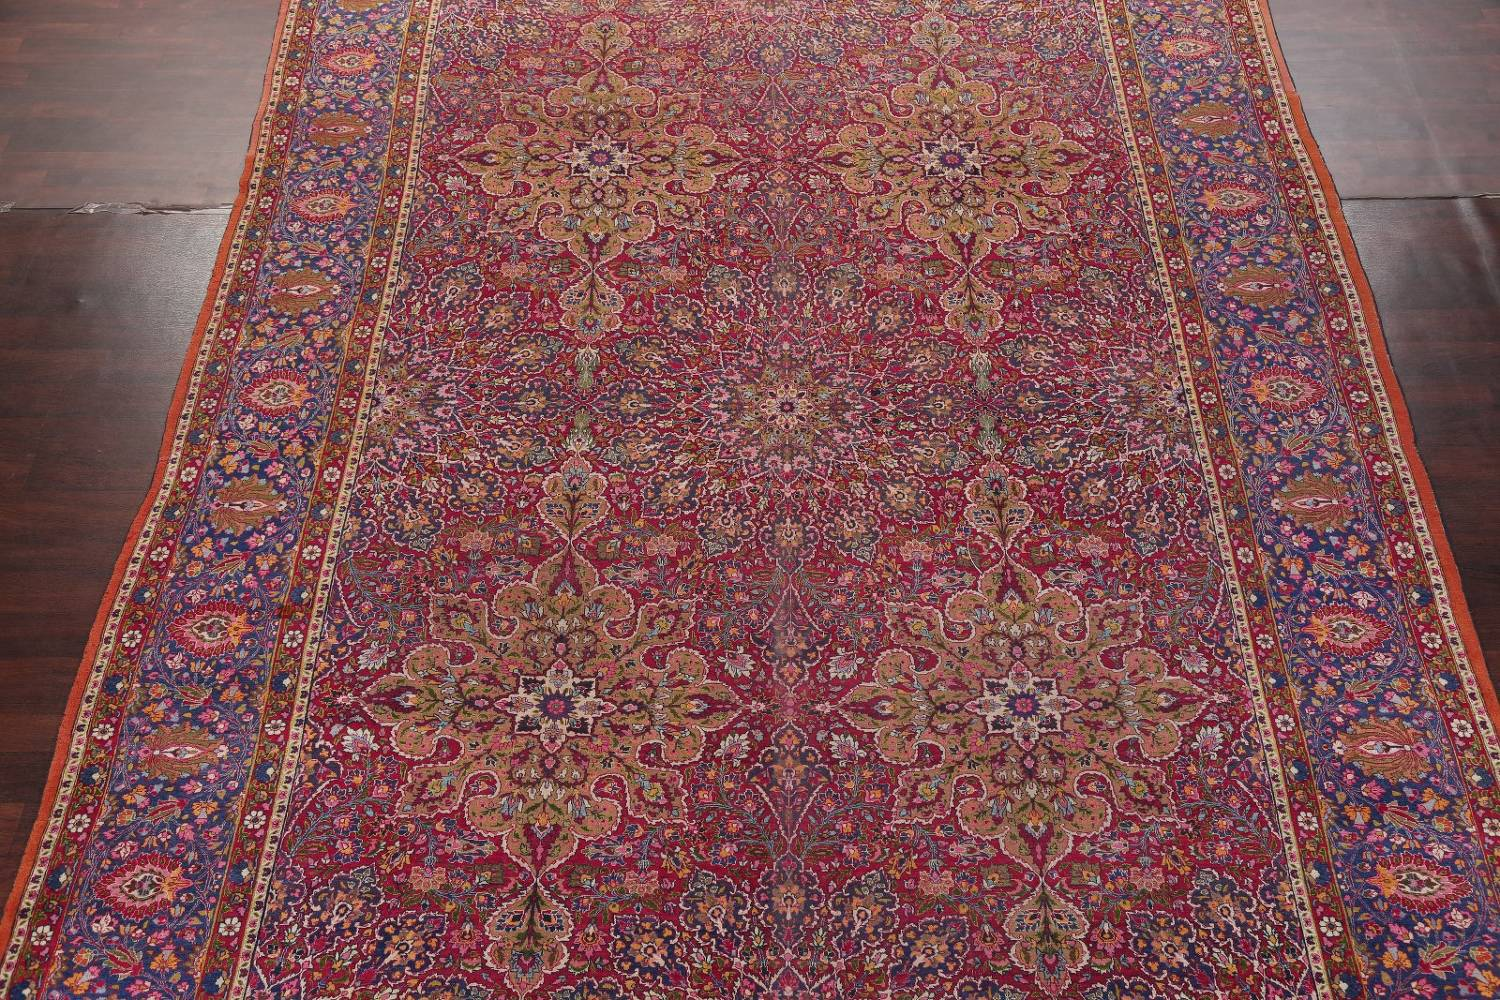 All-Over Floral 11x16 Mashad Persian Area Rug image 3